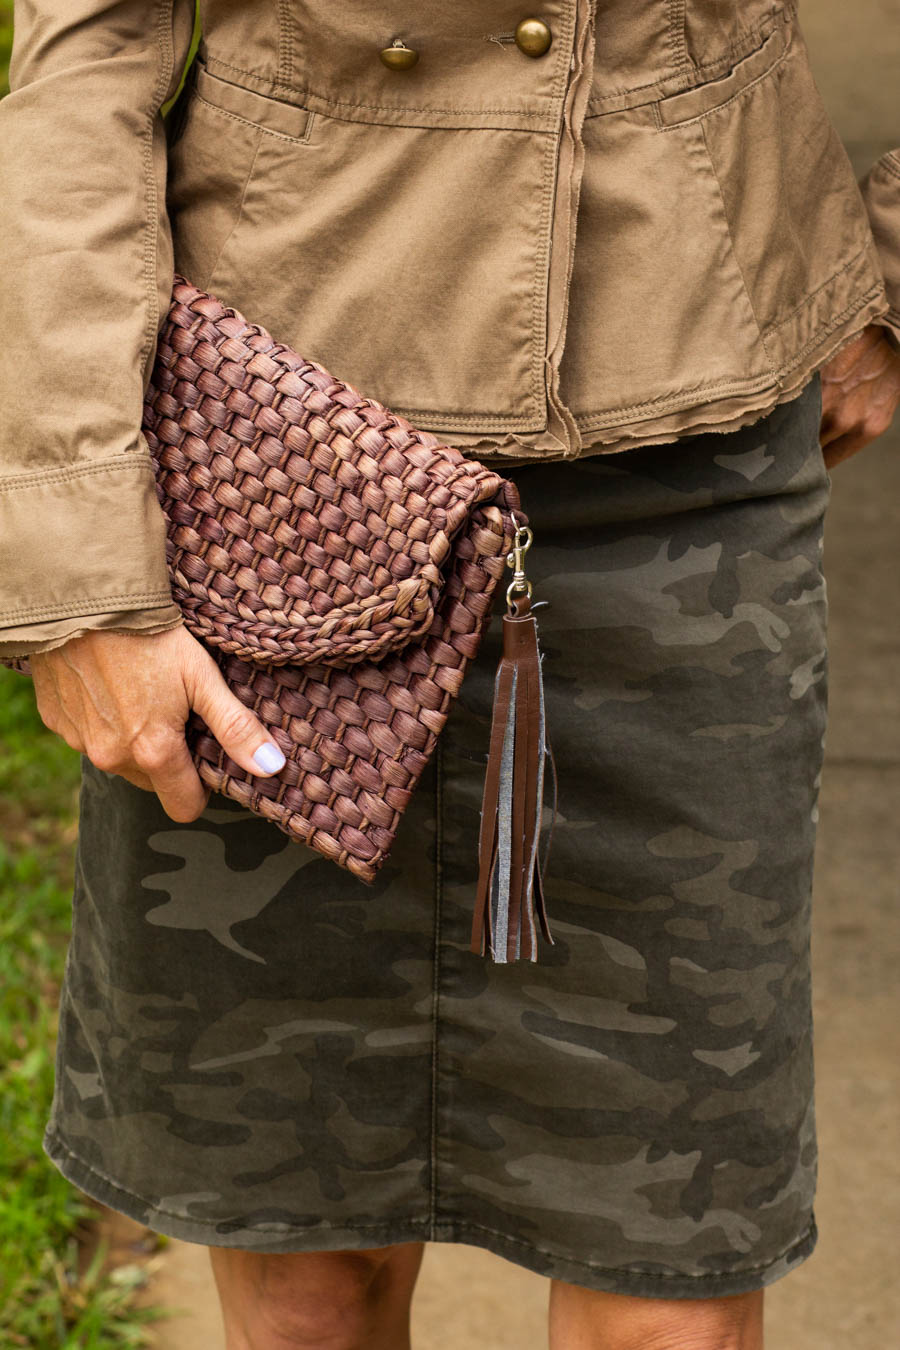 Woven clutch with camo skirt and military jacket